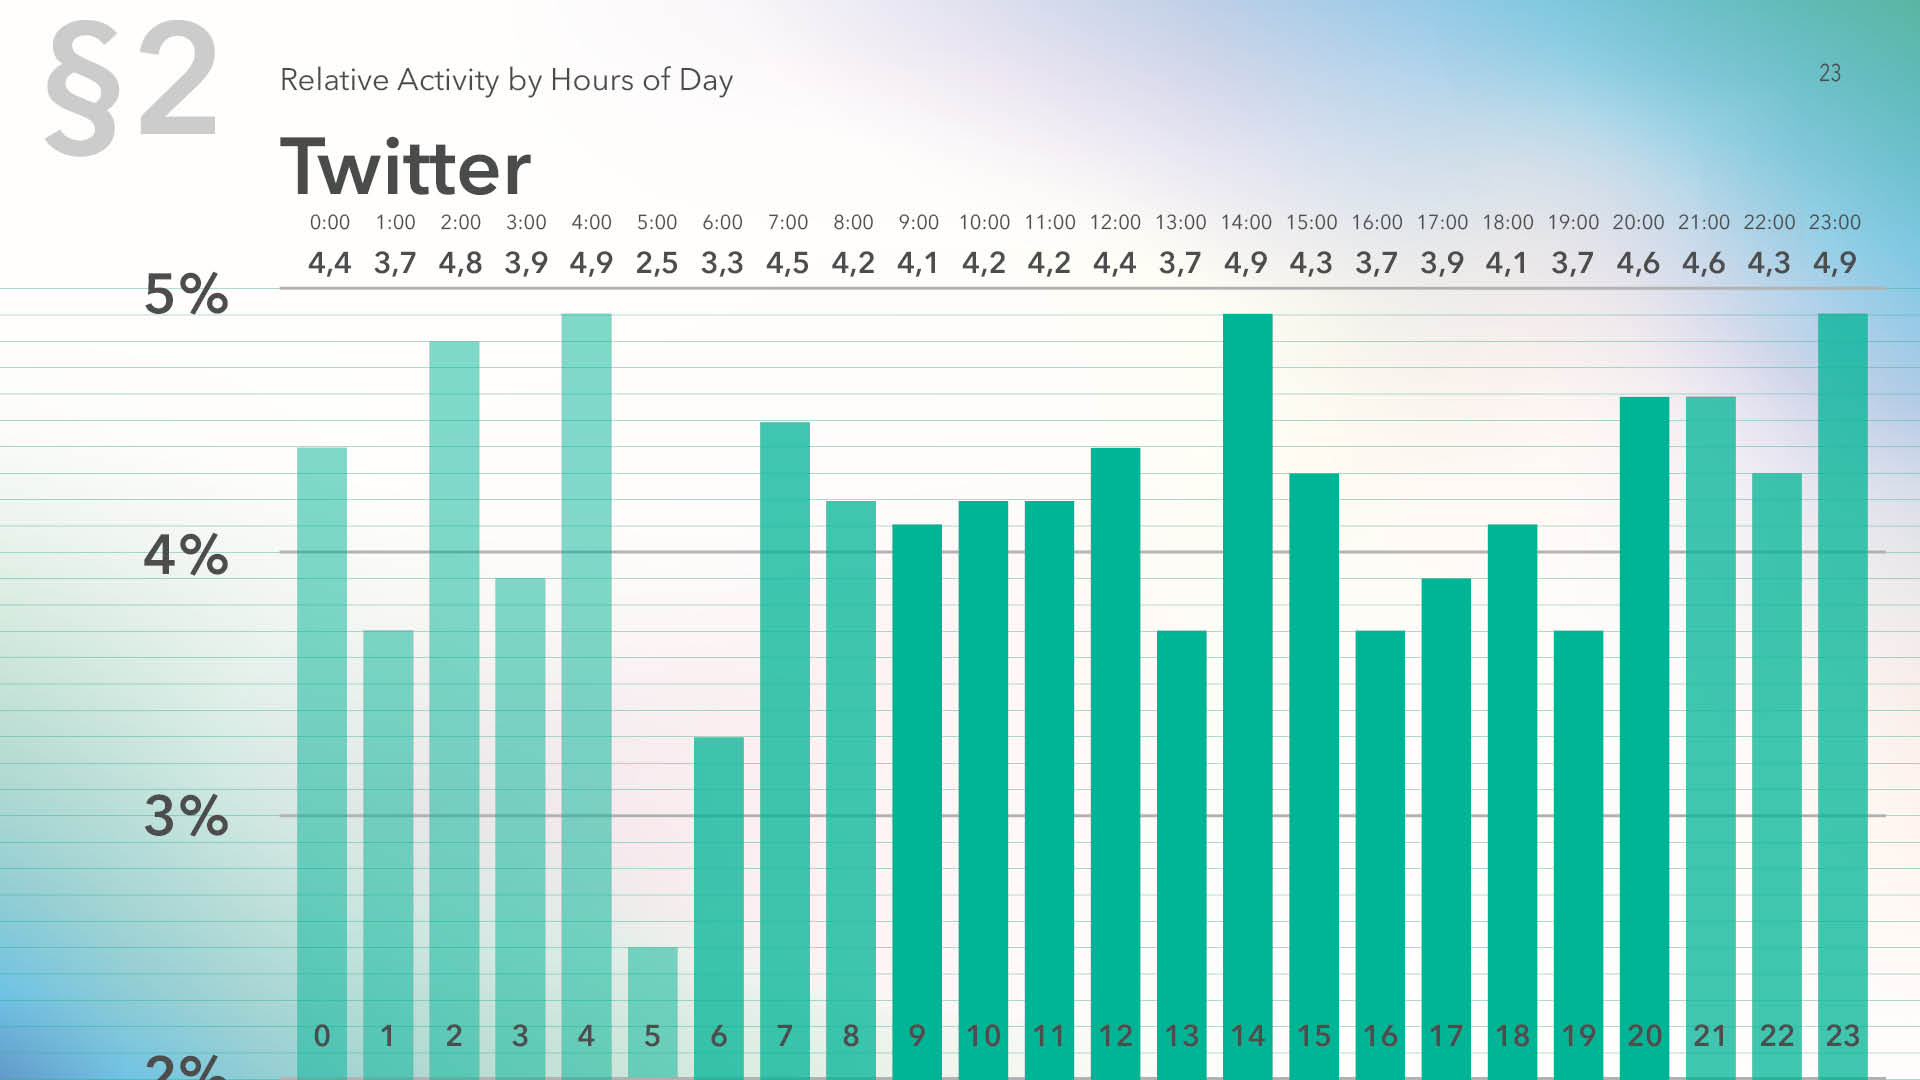 Twitter relative audience activity by hour of the day for 2019